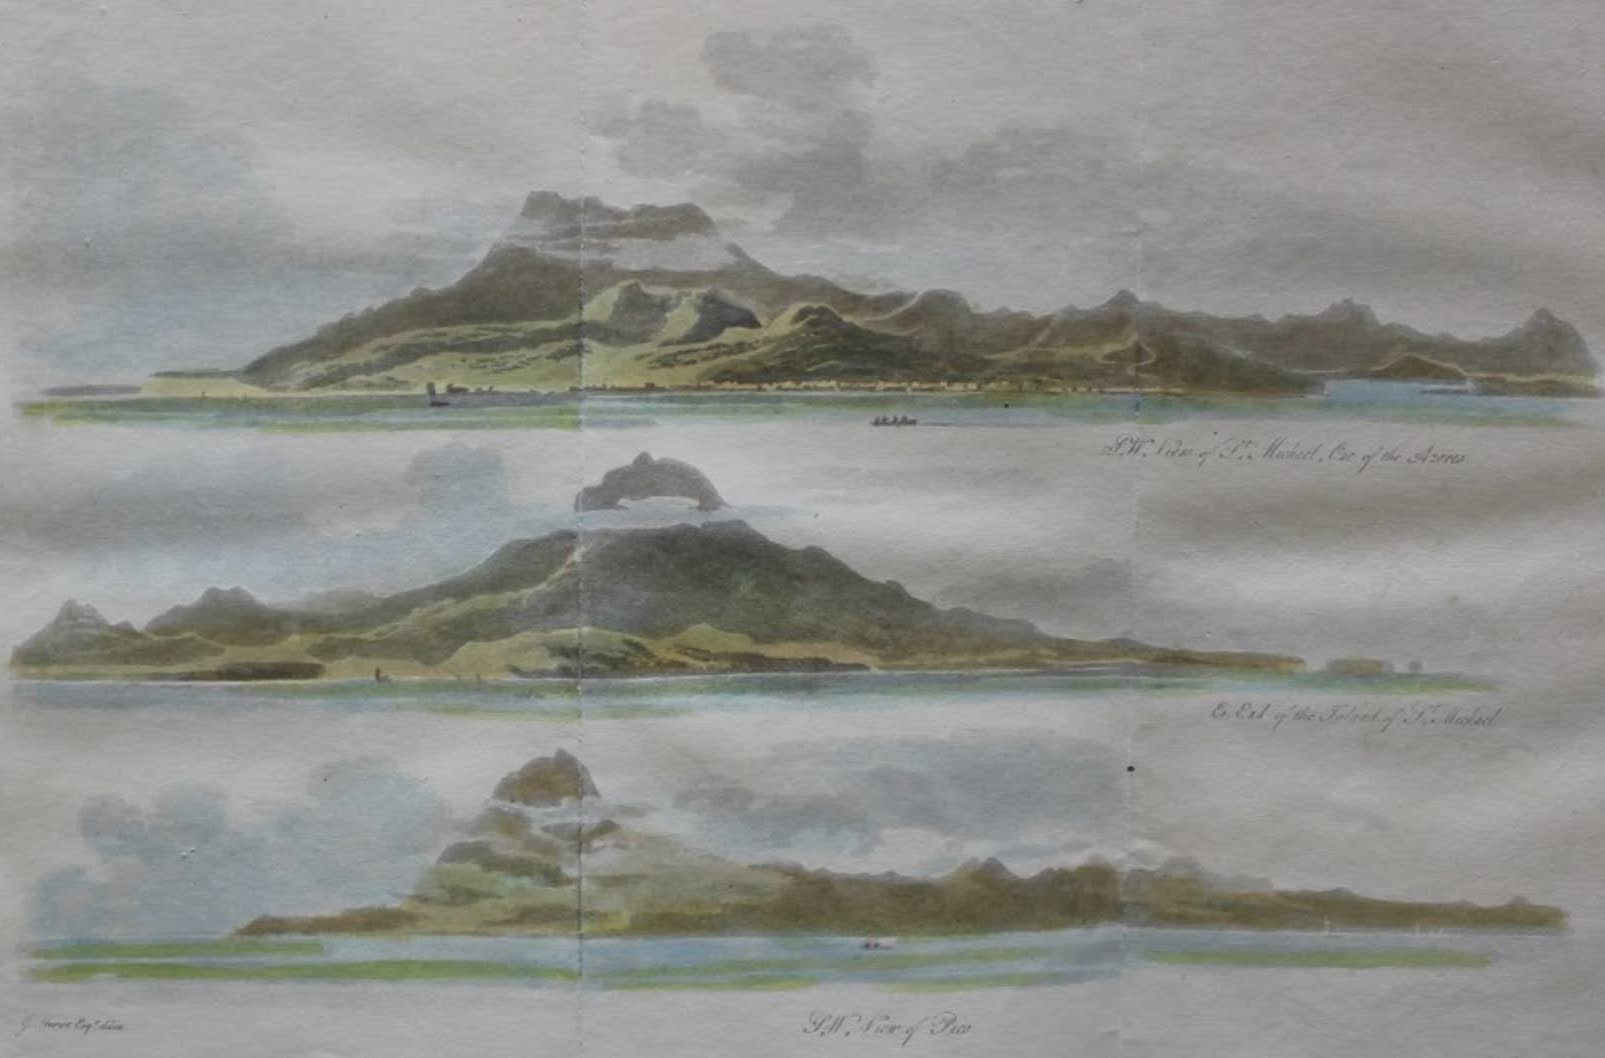 Travels Through the Canadas - View of the Azores (1807)